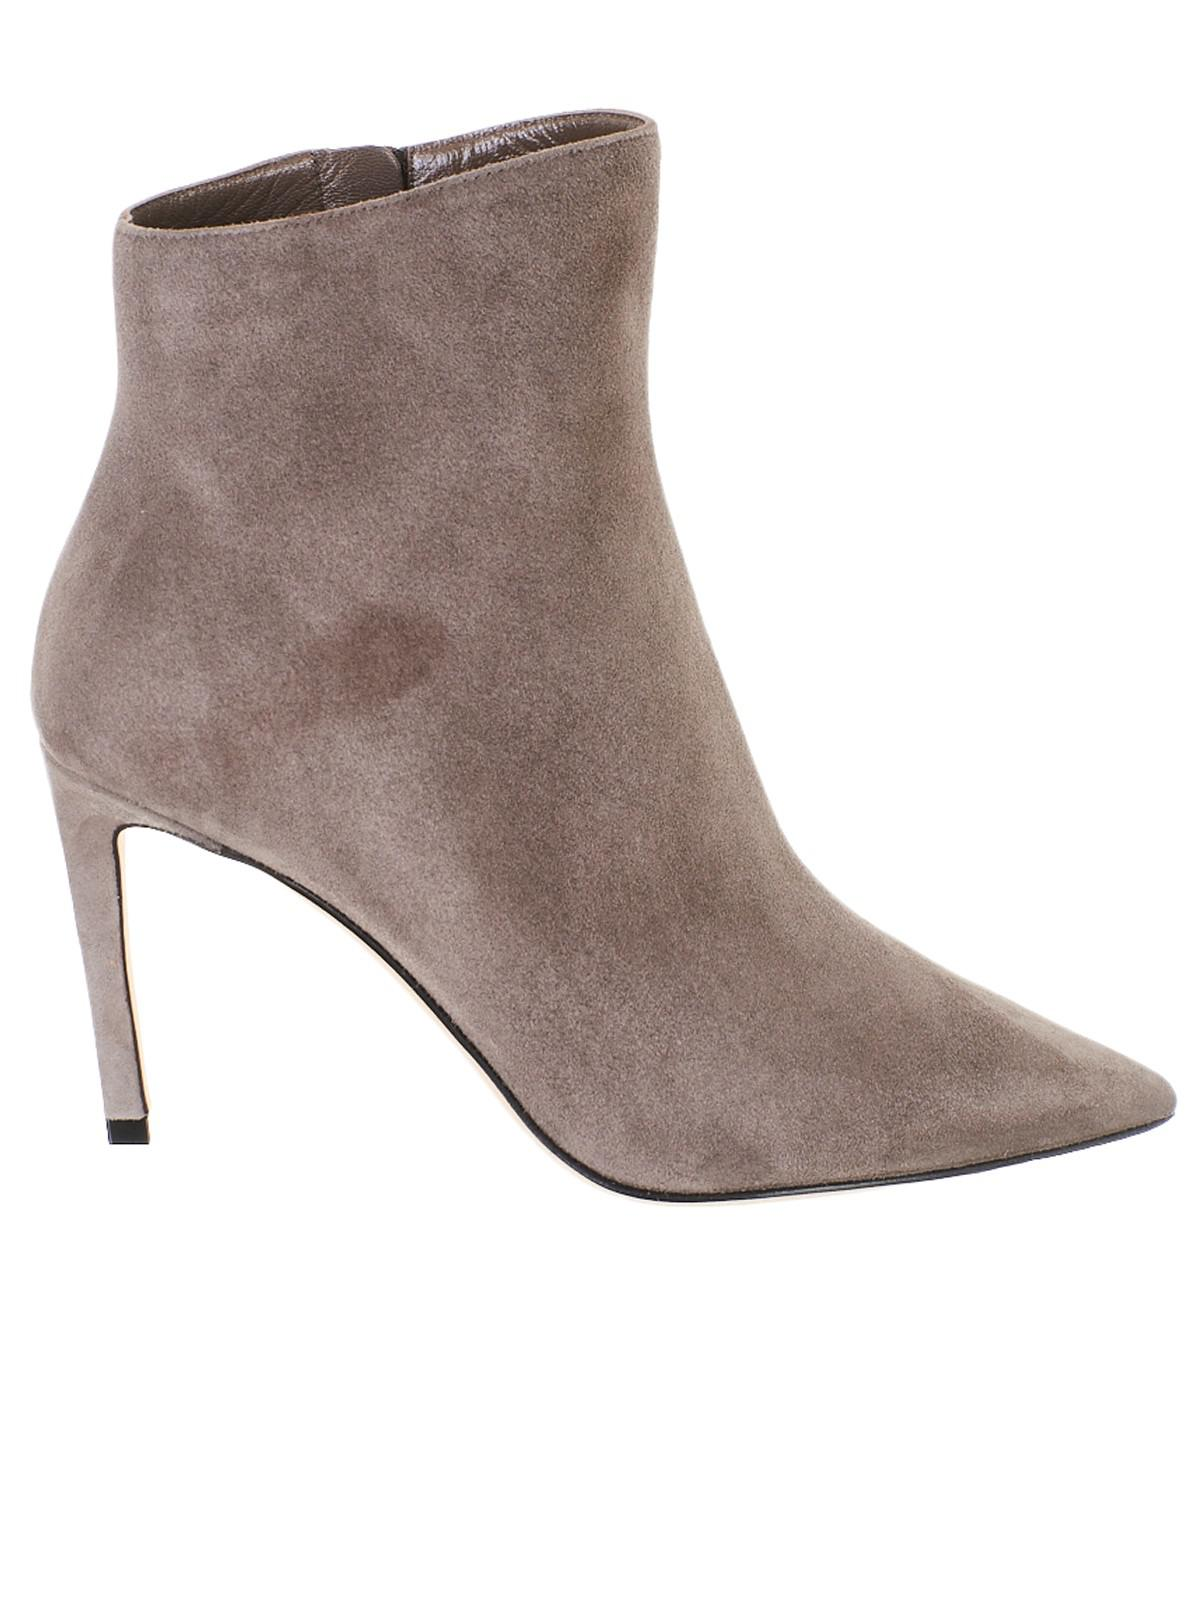 8f52d7231709e Lyst - Jimmy Choo Grey Helaine Ankle Boots in Gray